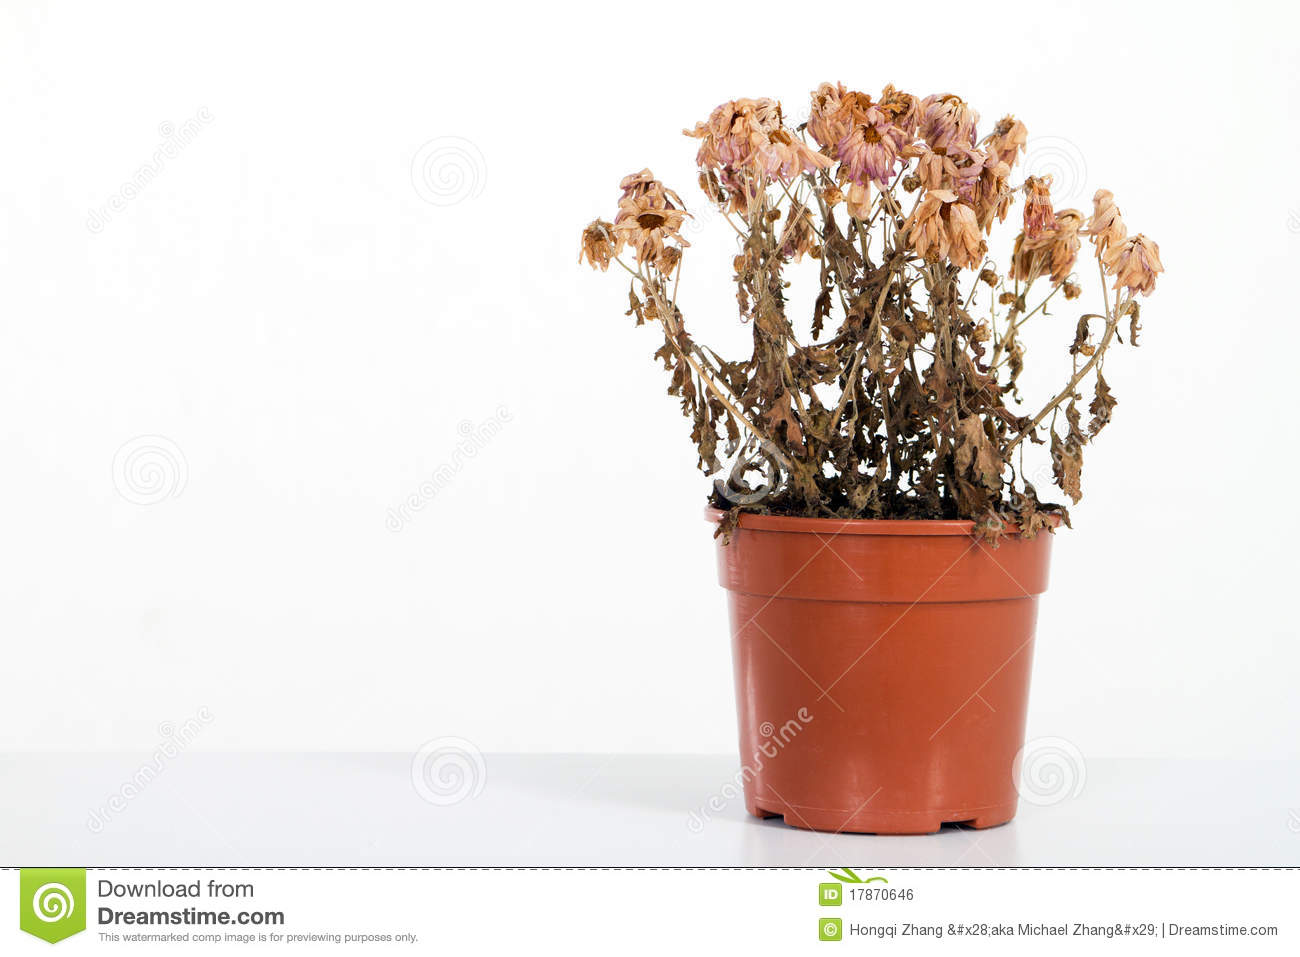 clipart dead flowers - photo #38